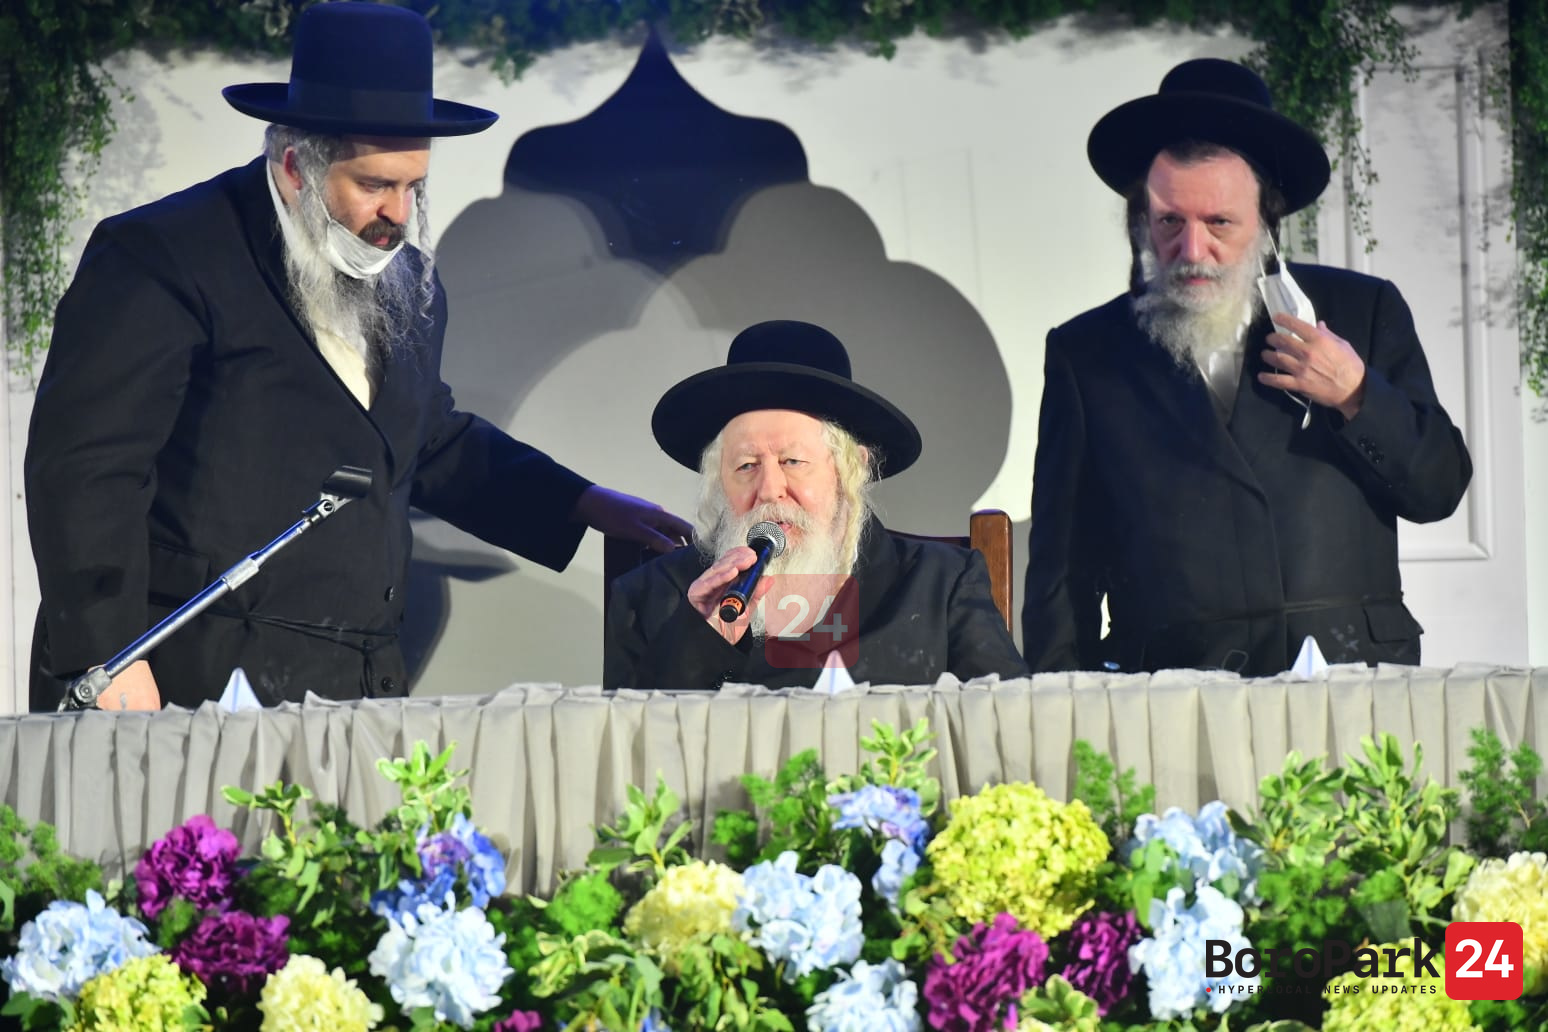 Gerrer Rebbe asked his Chasidim to make a Kiddush Hashem and protect their health.